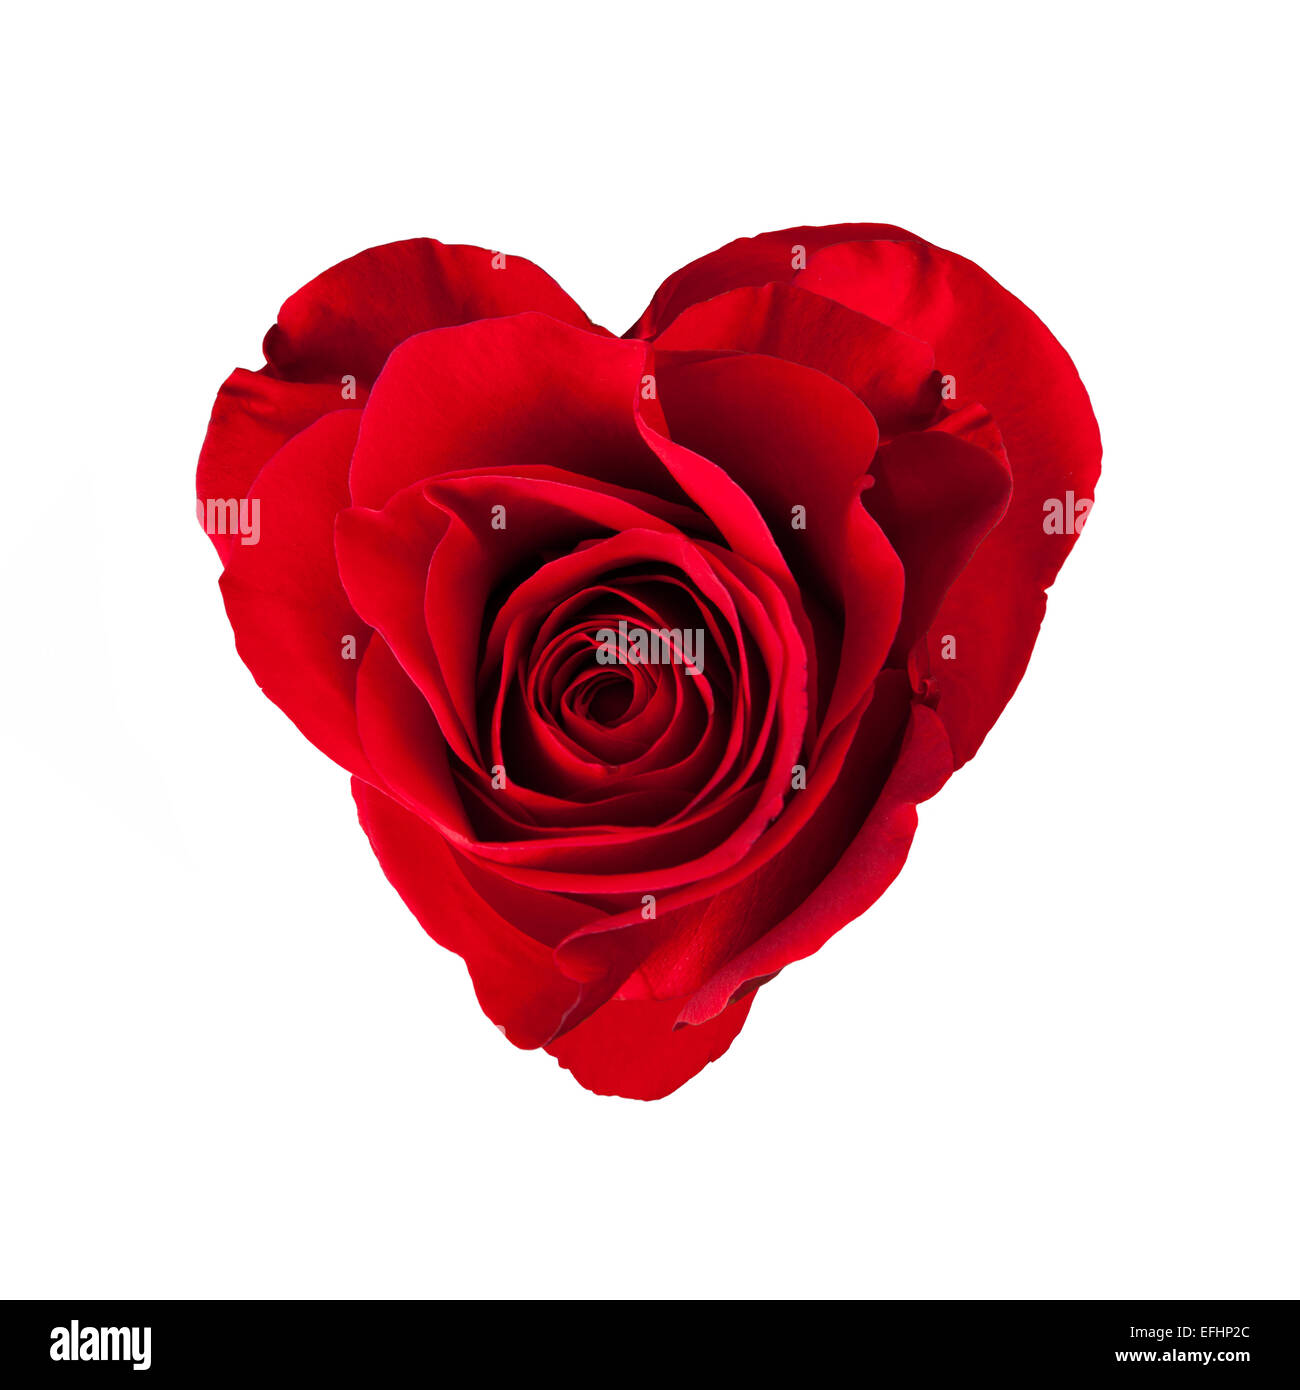 Red rose blossom in heart shape, isolated on white background - Stock Image